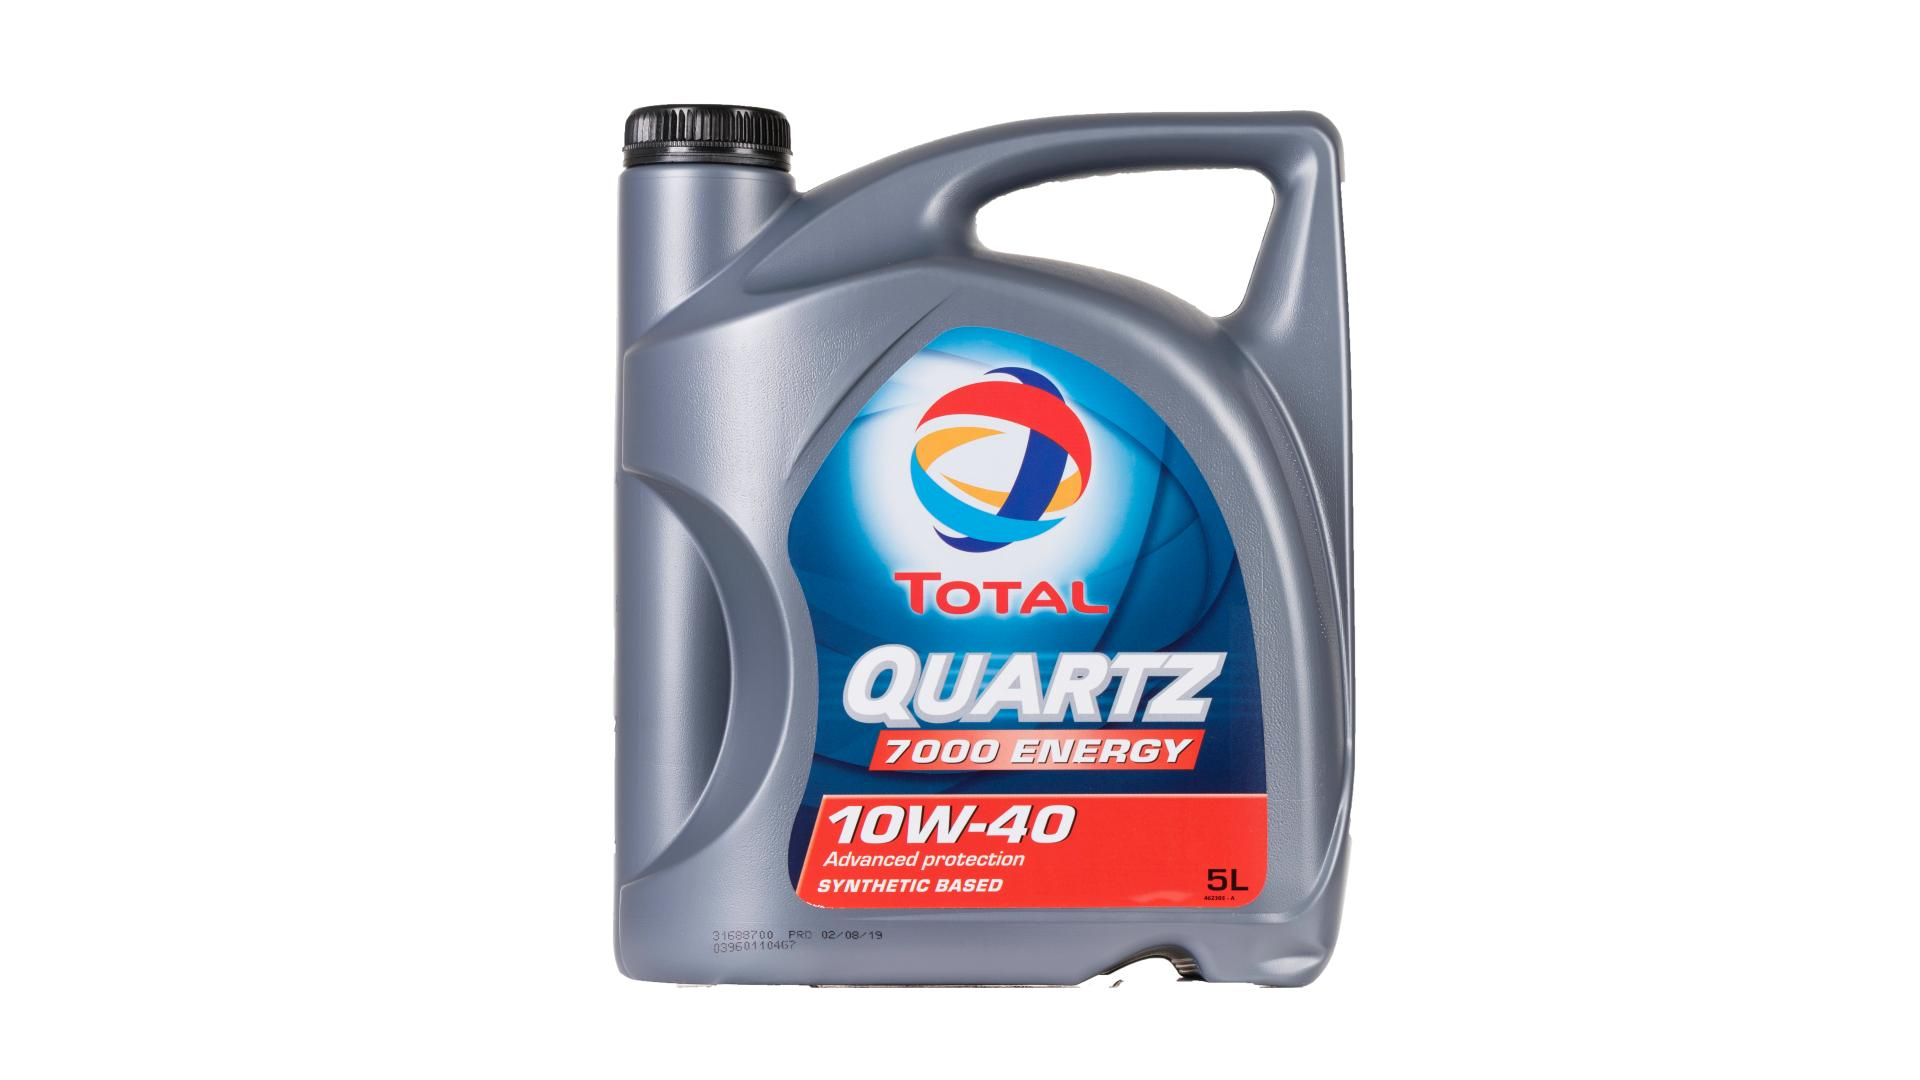 Total 10w-40 Energy 7000 5L (201537)